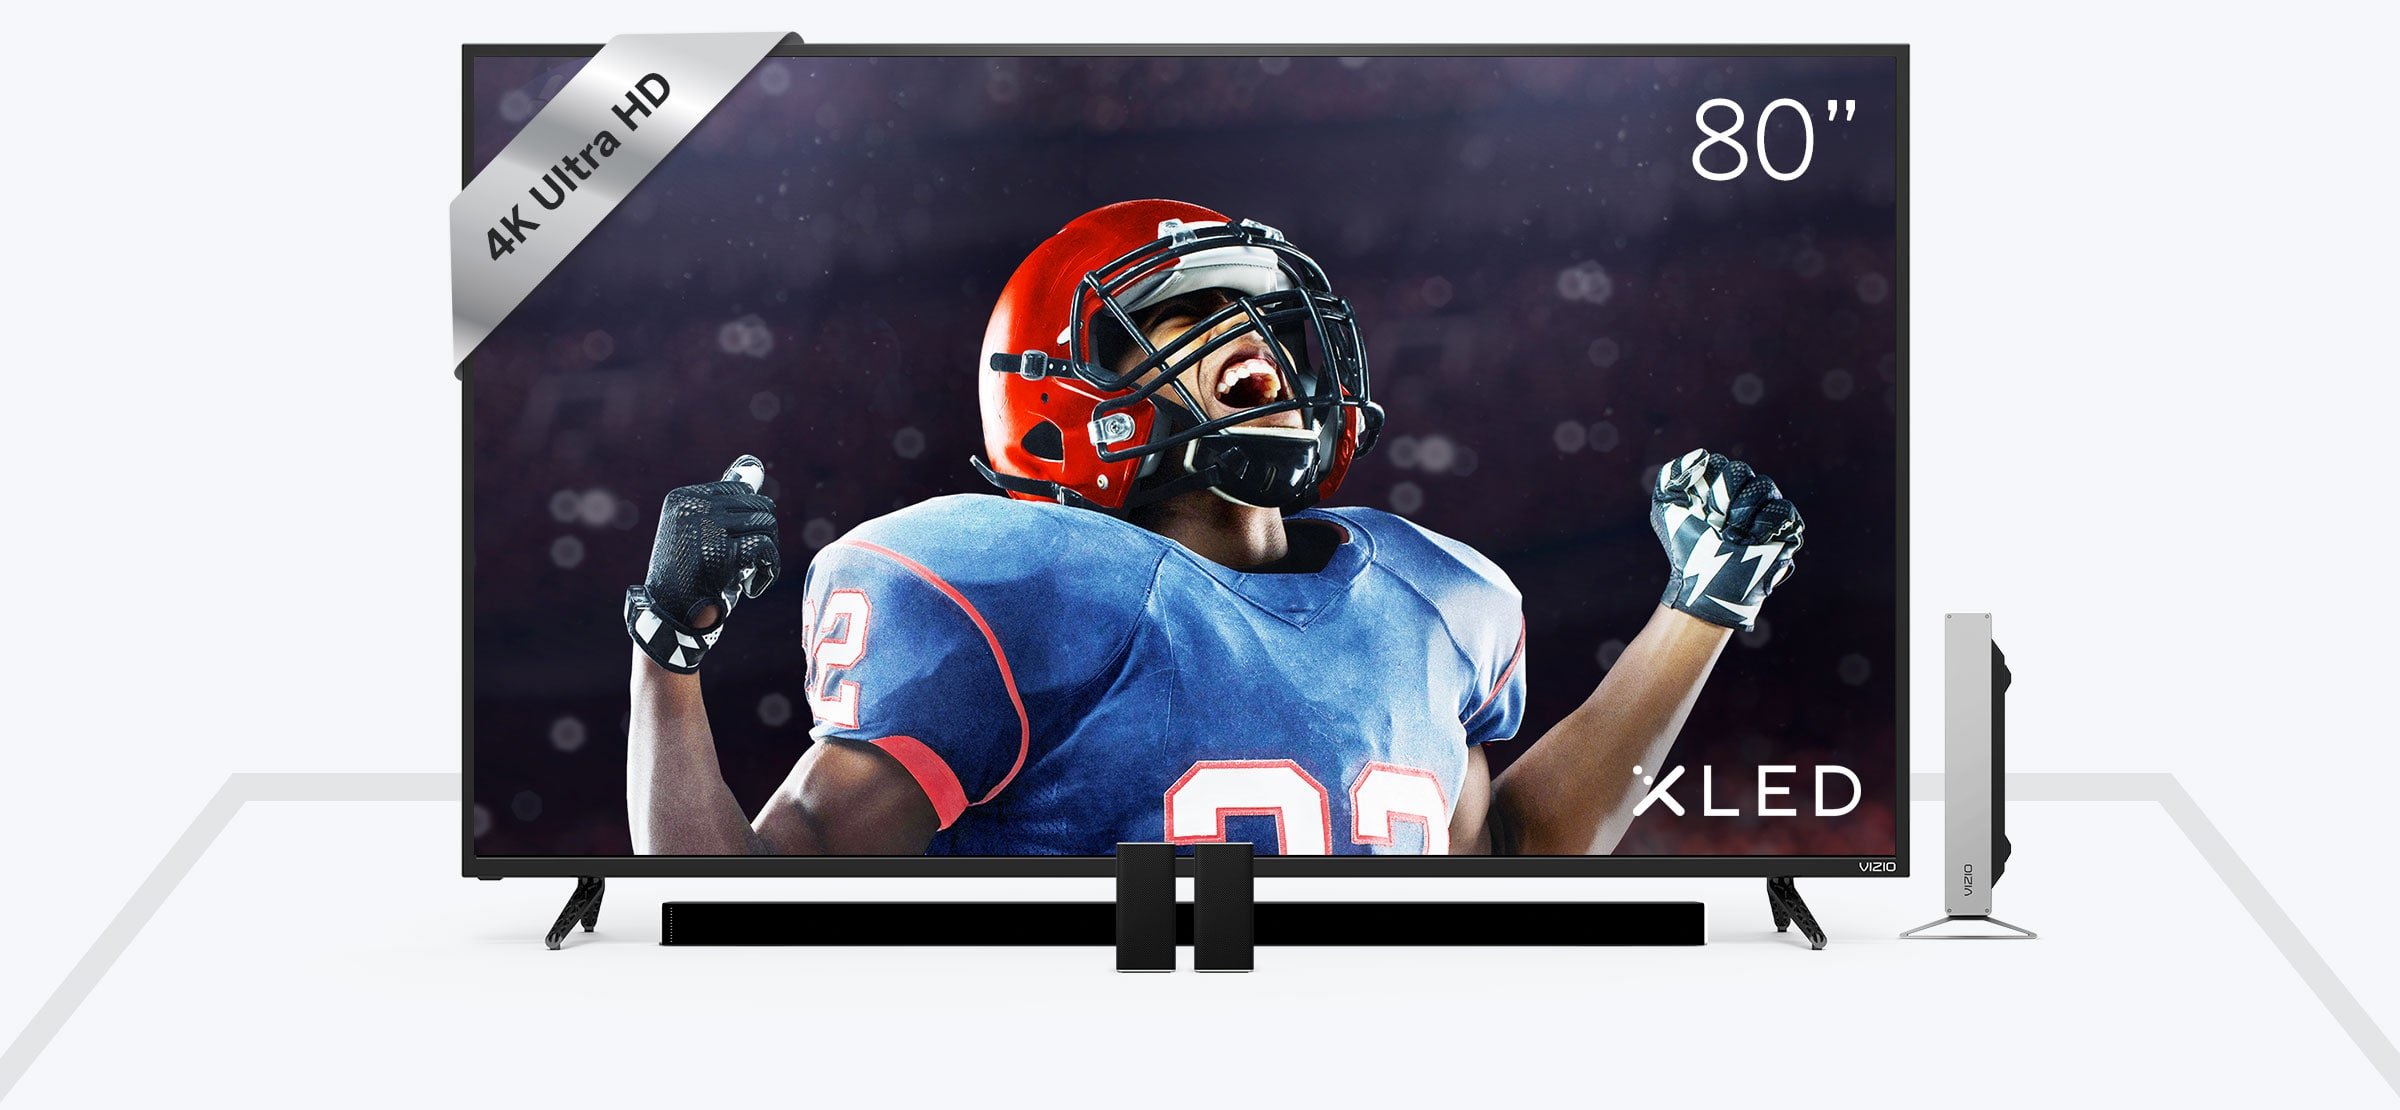 "VIZIO.COM 65""- 80"" 4K HDR Displays + 5.1 Sound Bar Bundle up $850 off (ends on 9/10)"